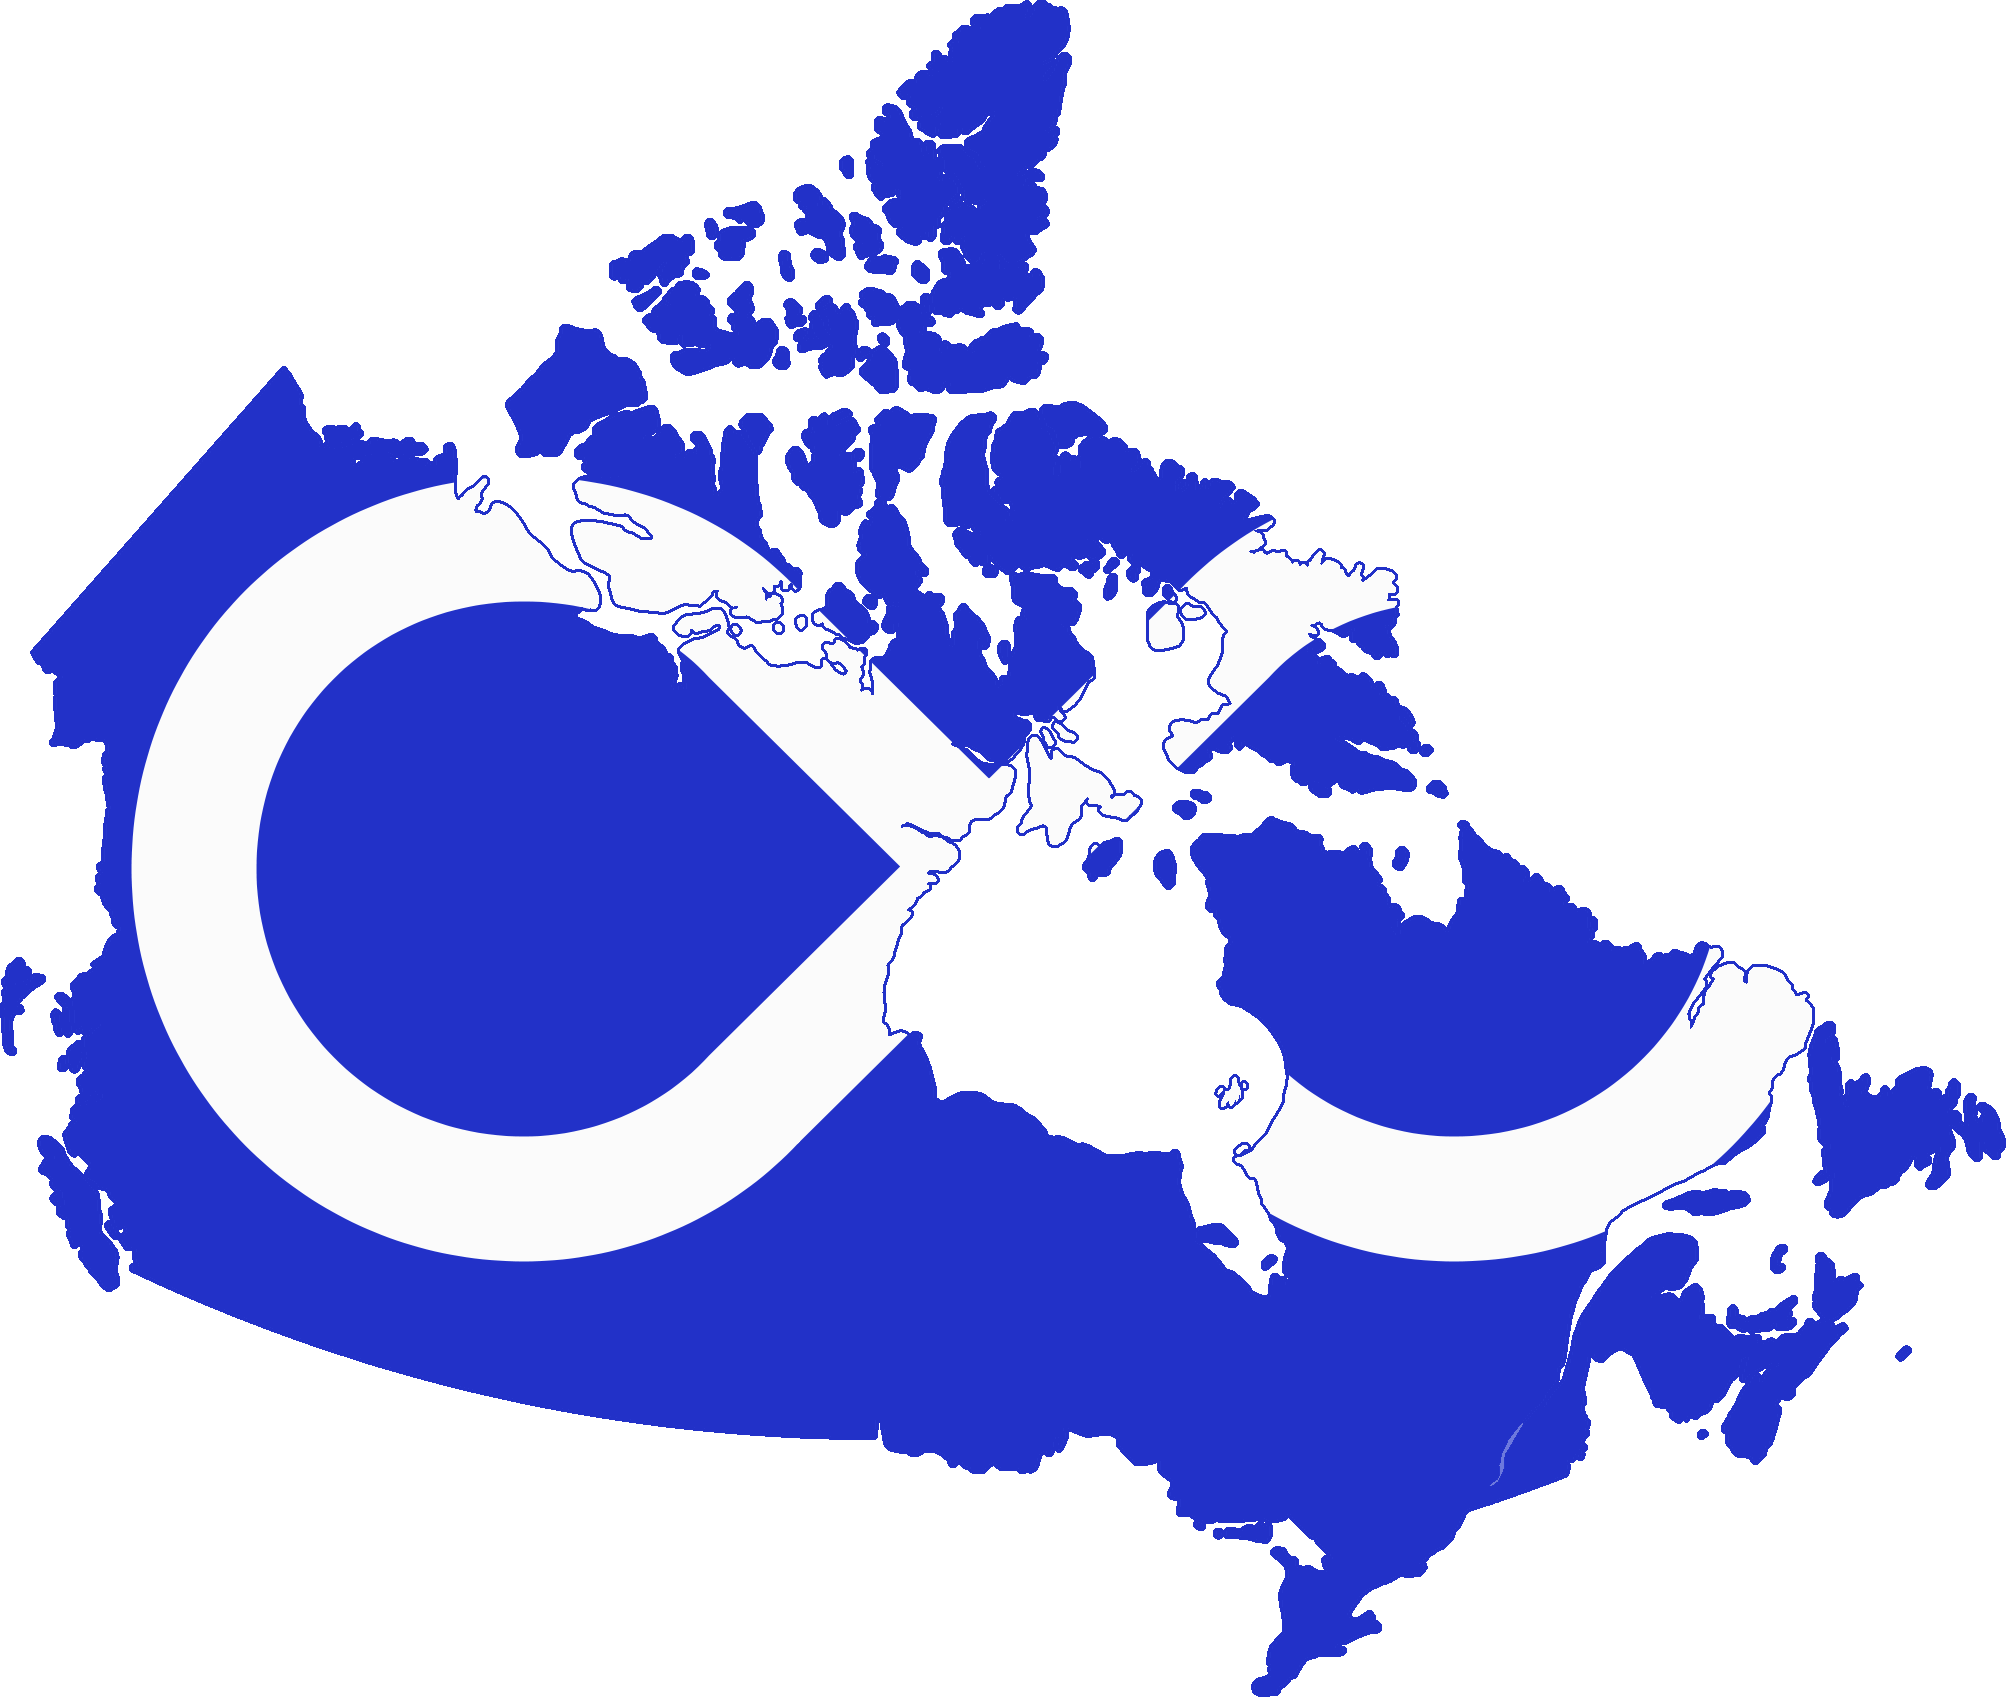 FileFlag map of Canada Metis Flagpng  Wikimedia Commons